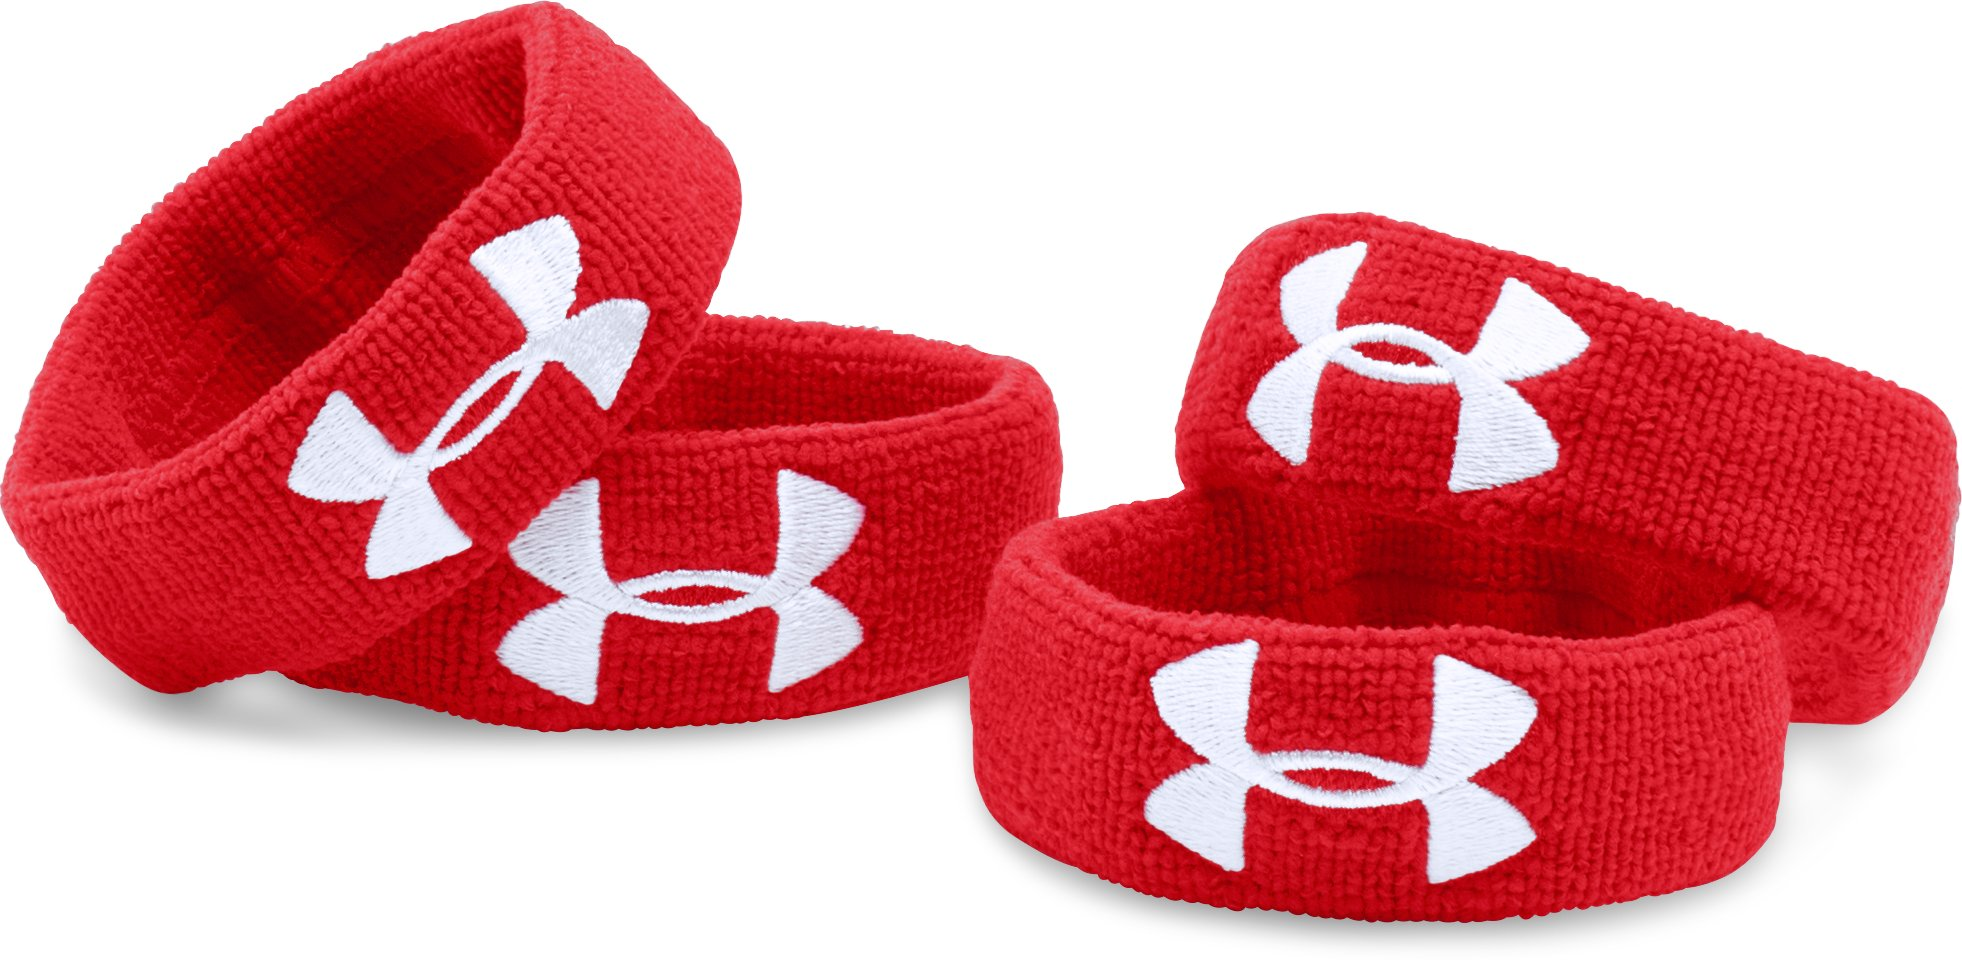 "UA 1"" Performance Wristband 4-Pack, Red, undefined"